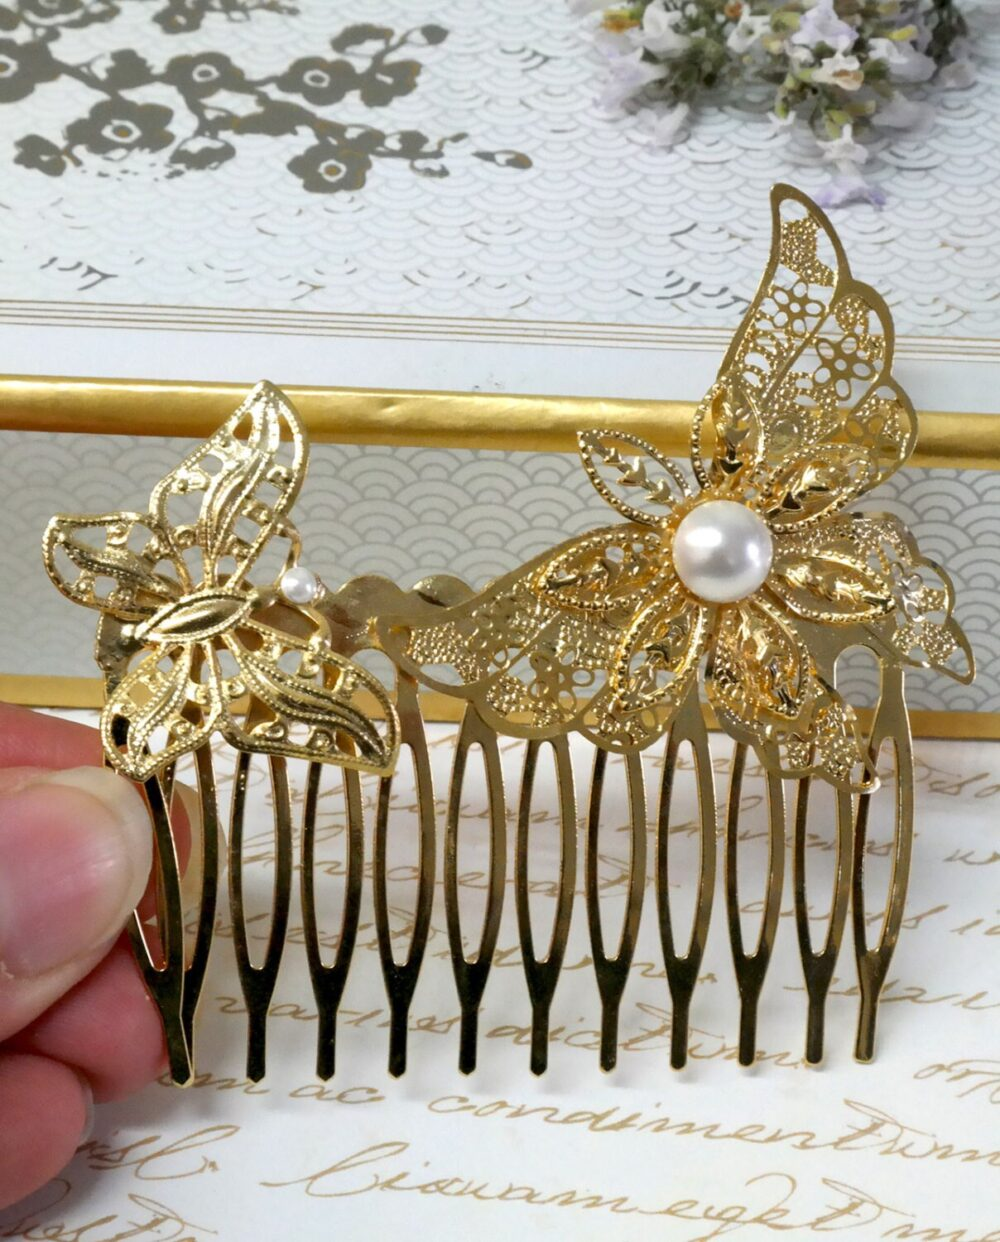 White Pearls Gold Wedding Comb, Bridal Hair Butterfly Piece, Boho Chic Wedding, Accessories